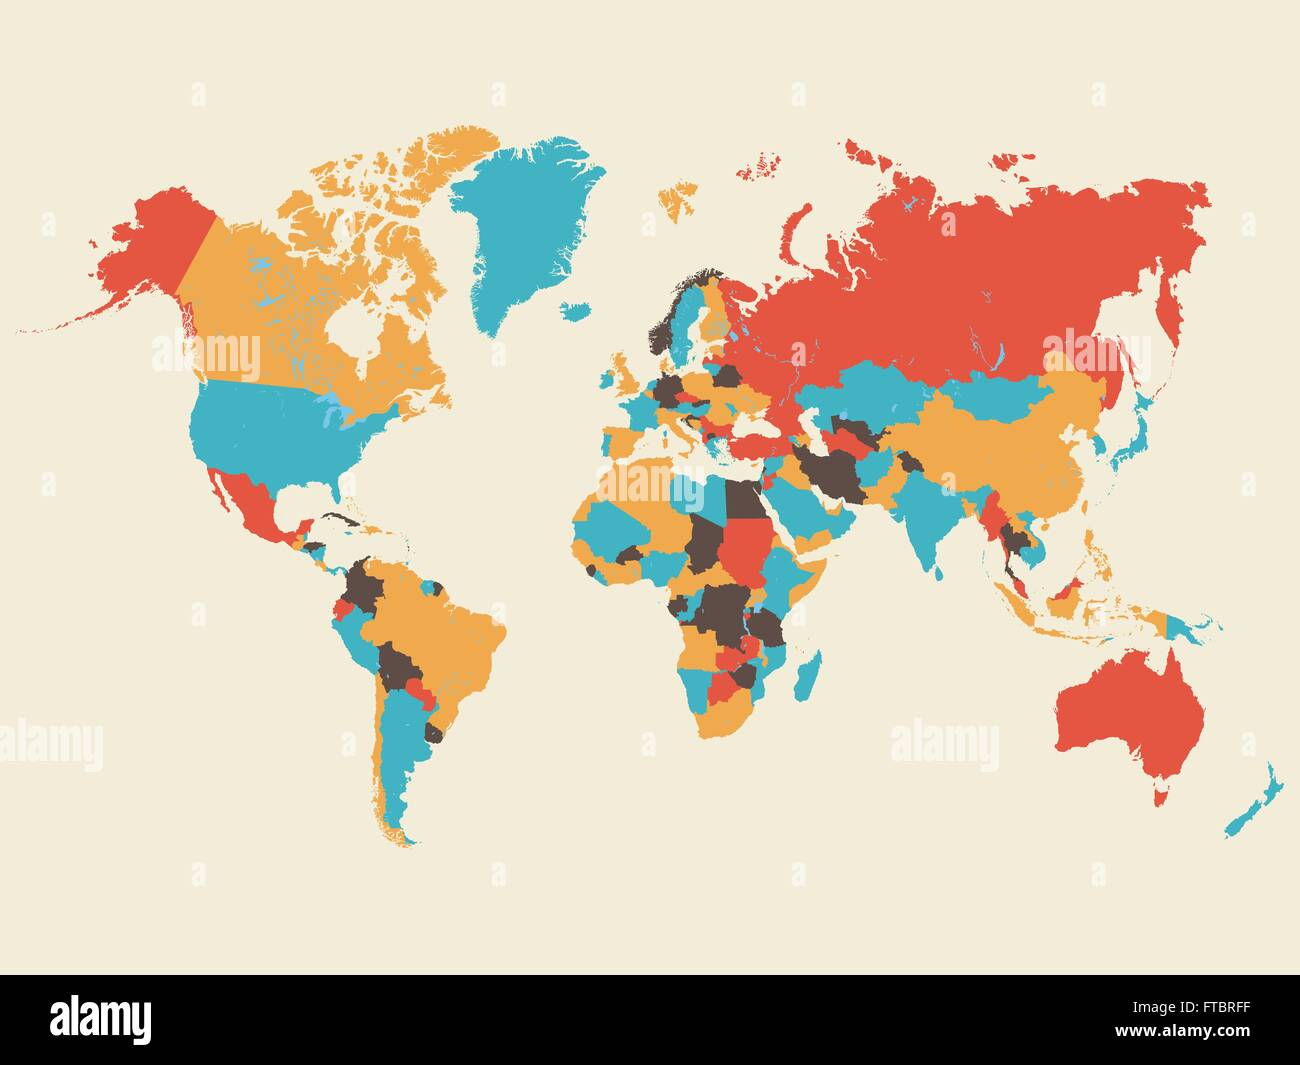 Colorful world map illustration stock vector art illustration colorful world map illustration gumiabroncs Gallery